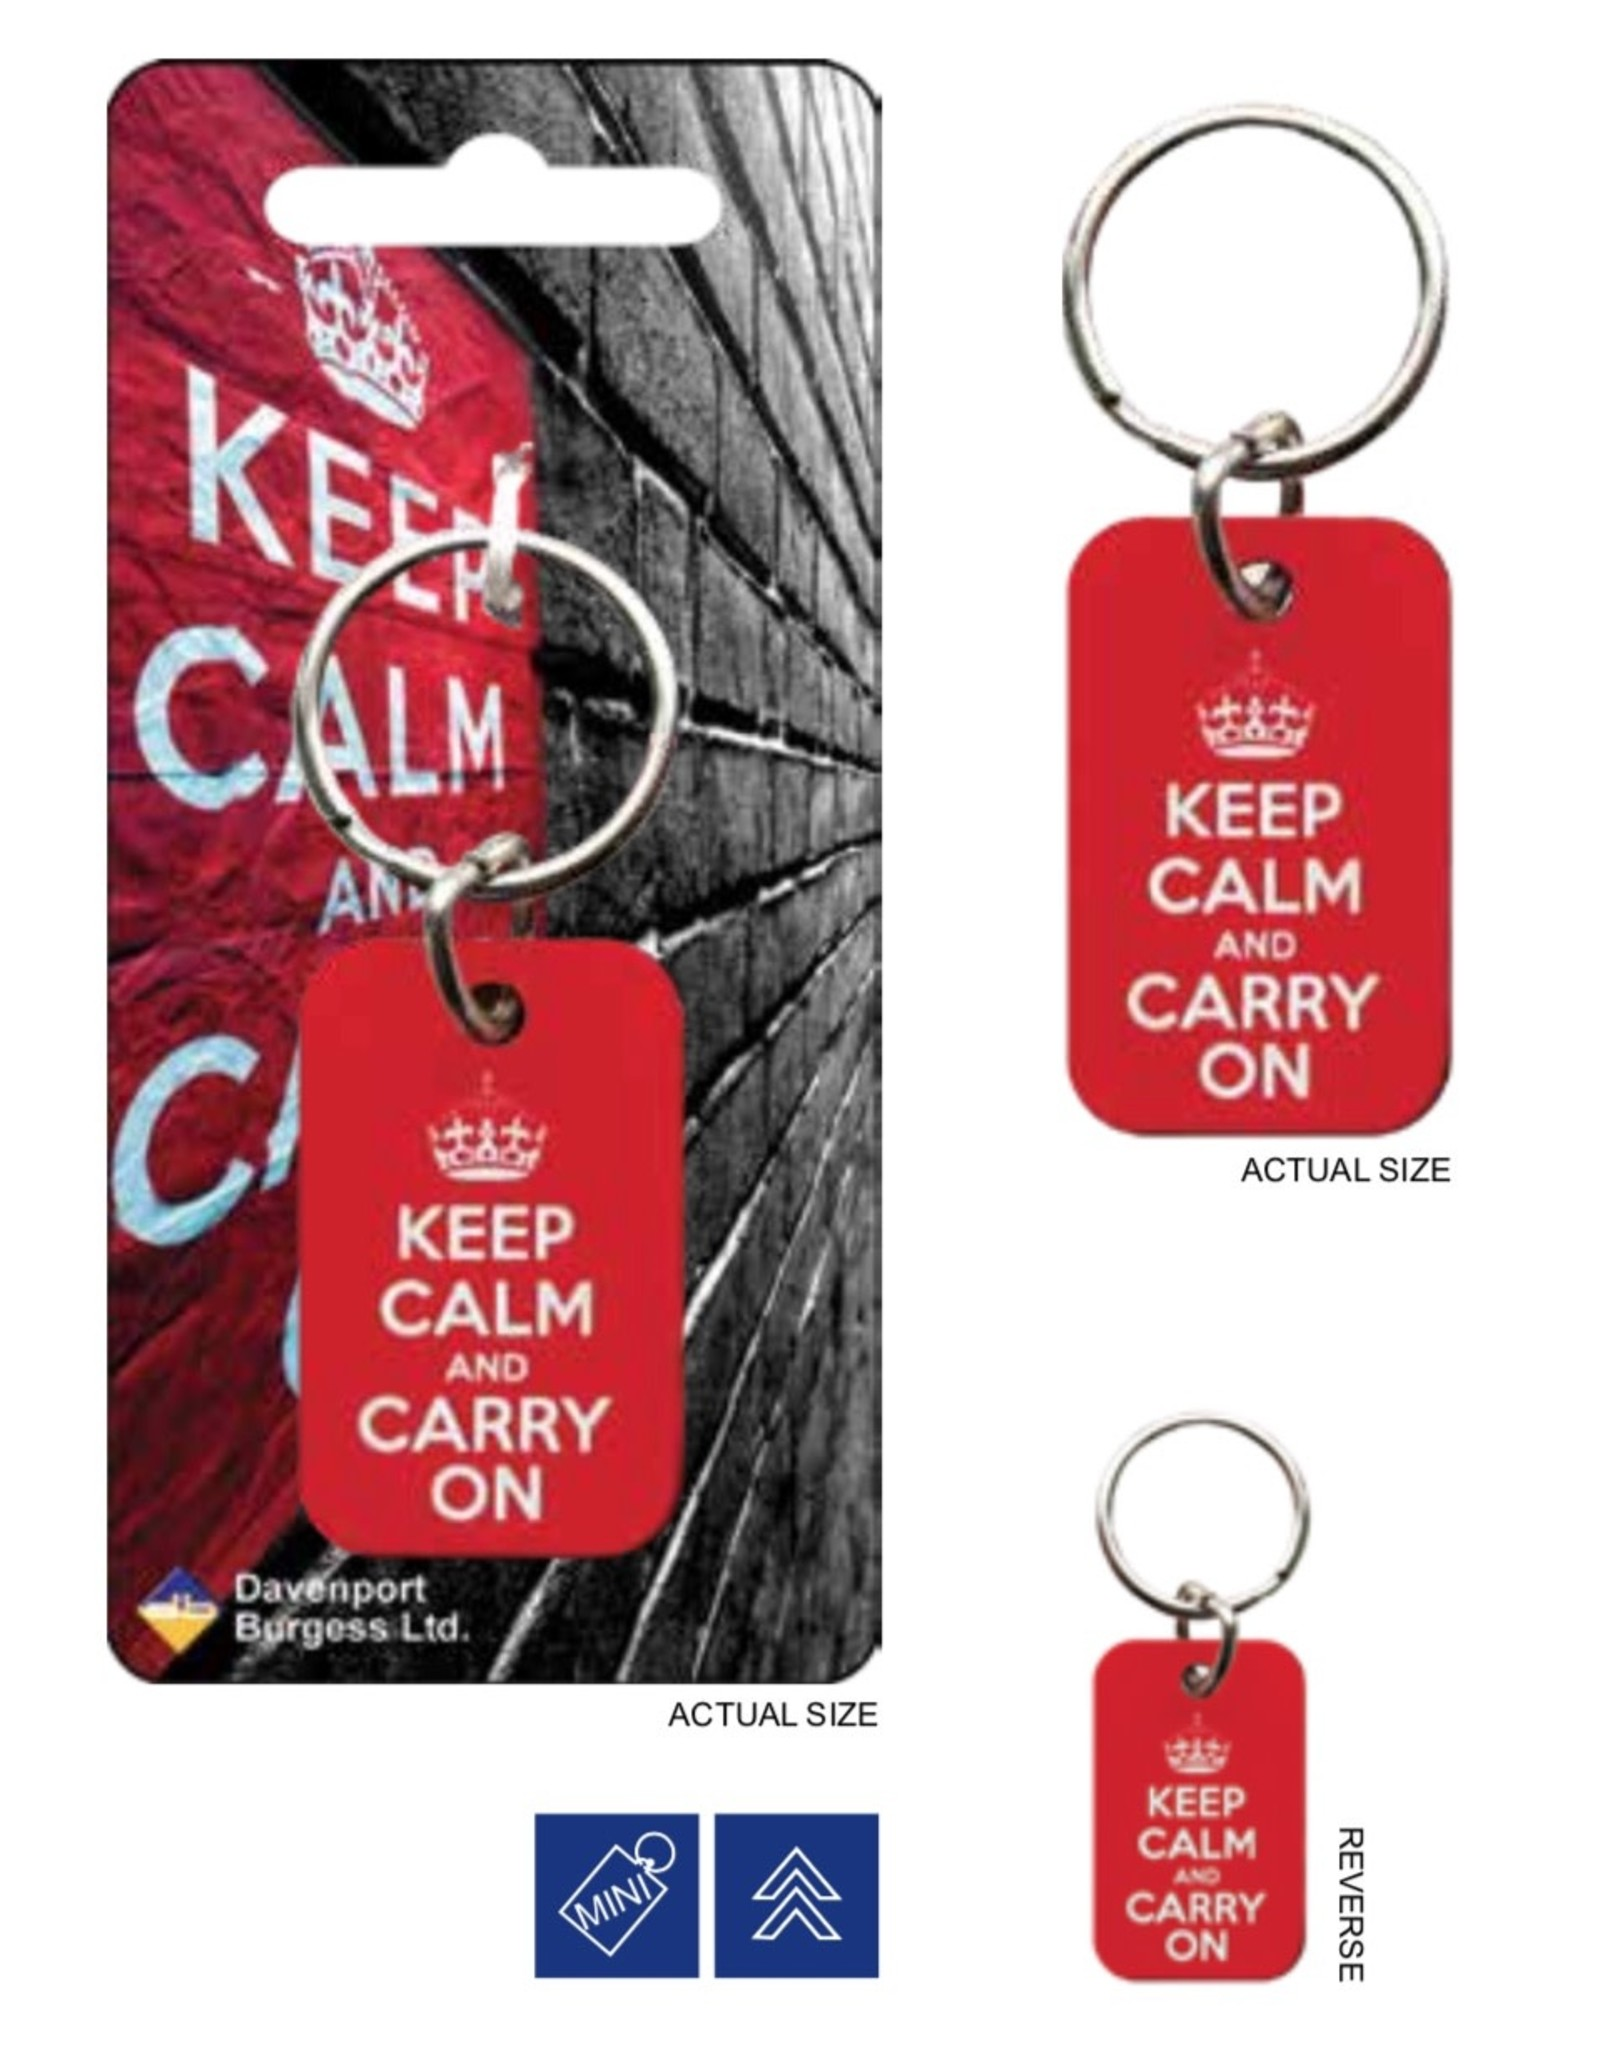 KEEP CALM - Metal Keychain - Red